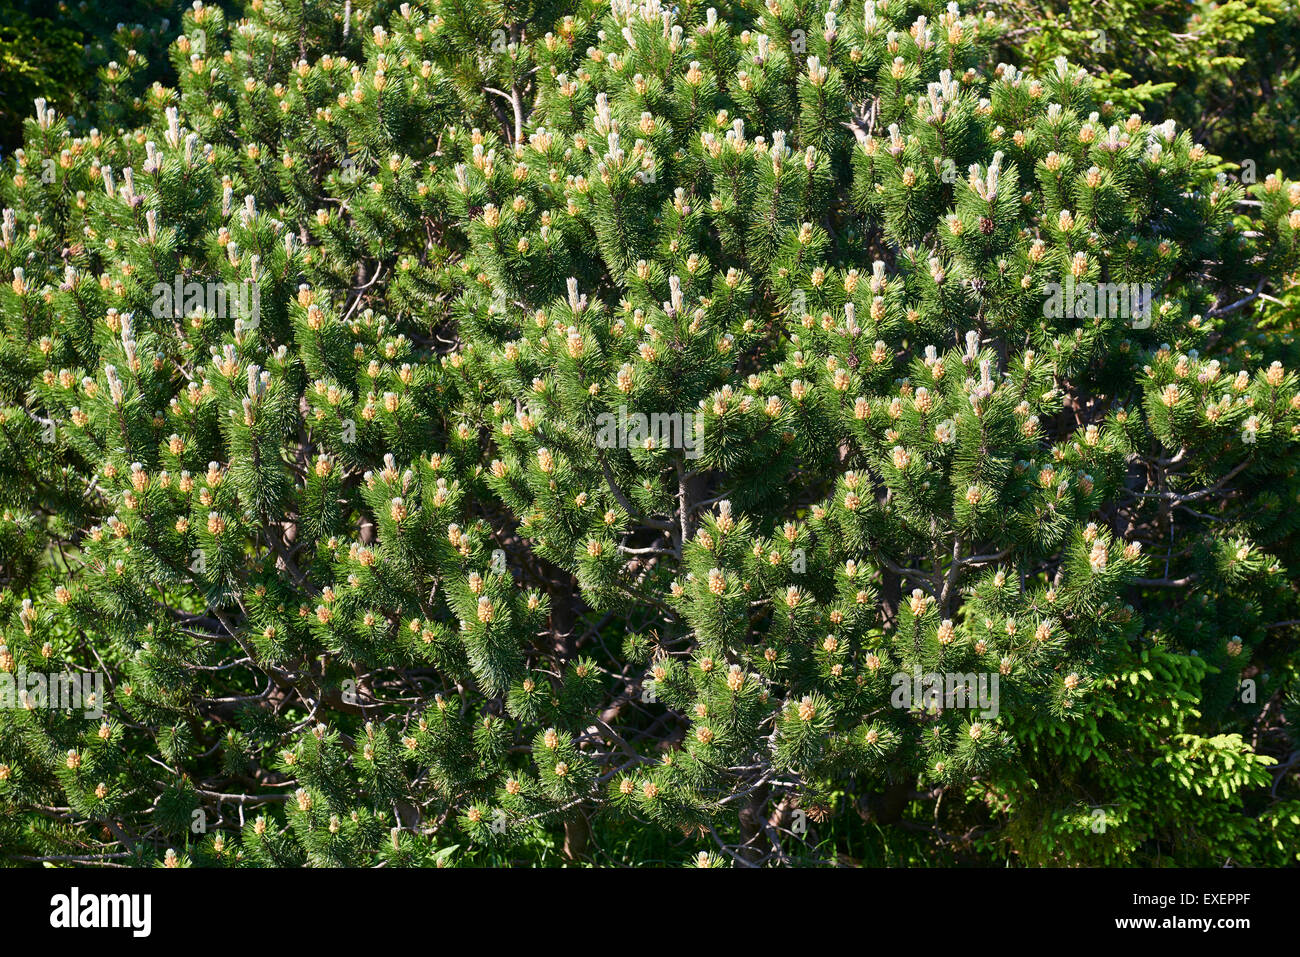 Pumilio mountain pine: planting and care, features of growing and breeding 40